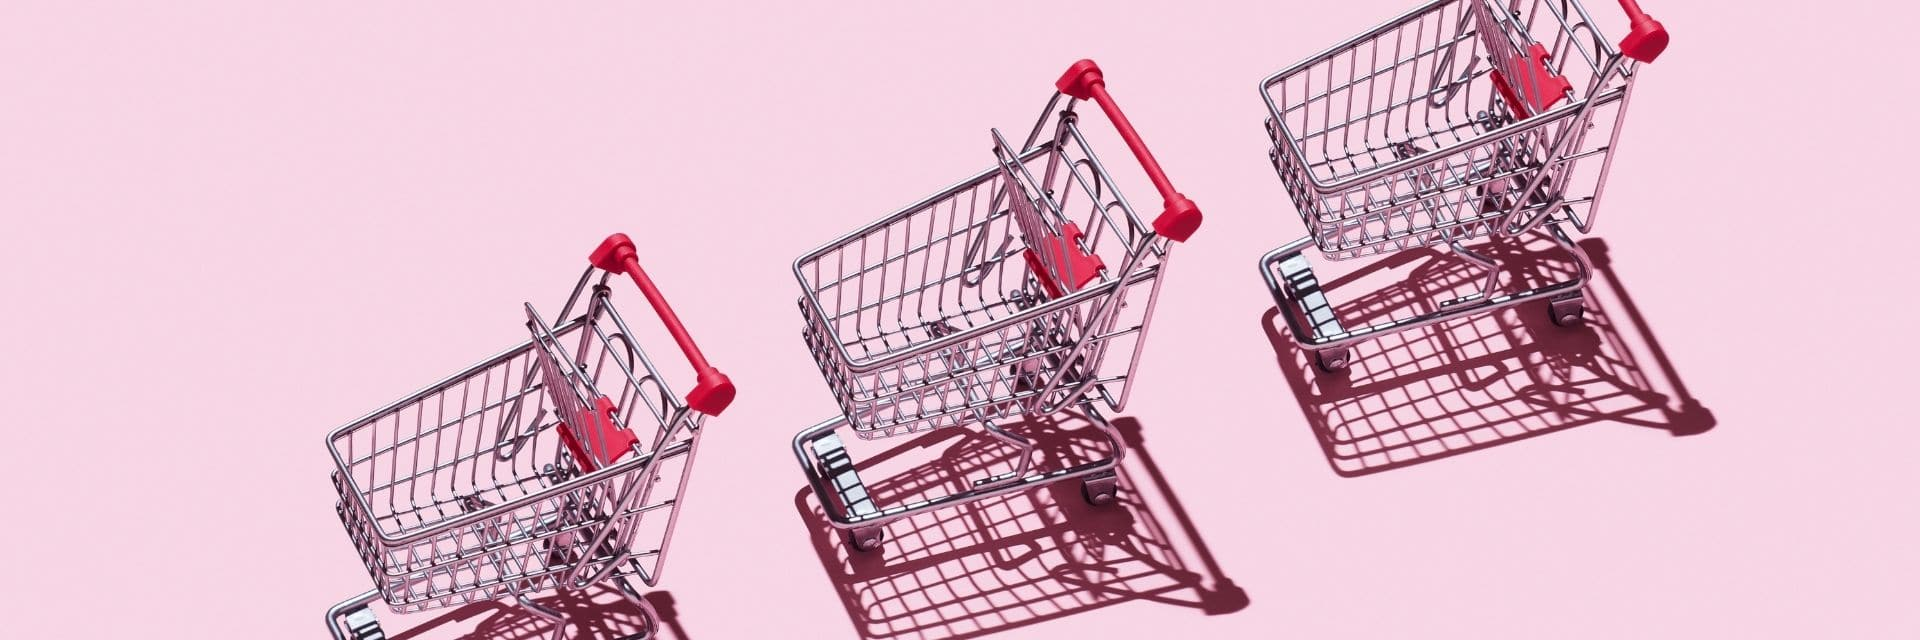 A pink background with three shopping carts lined up on top. They have heavy shadow casting next to them but the image is bright.